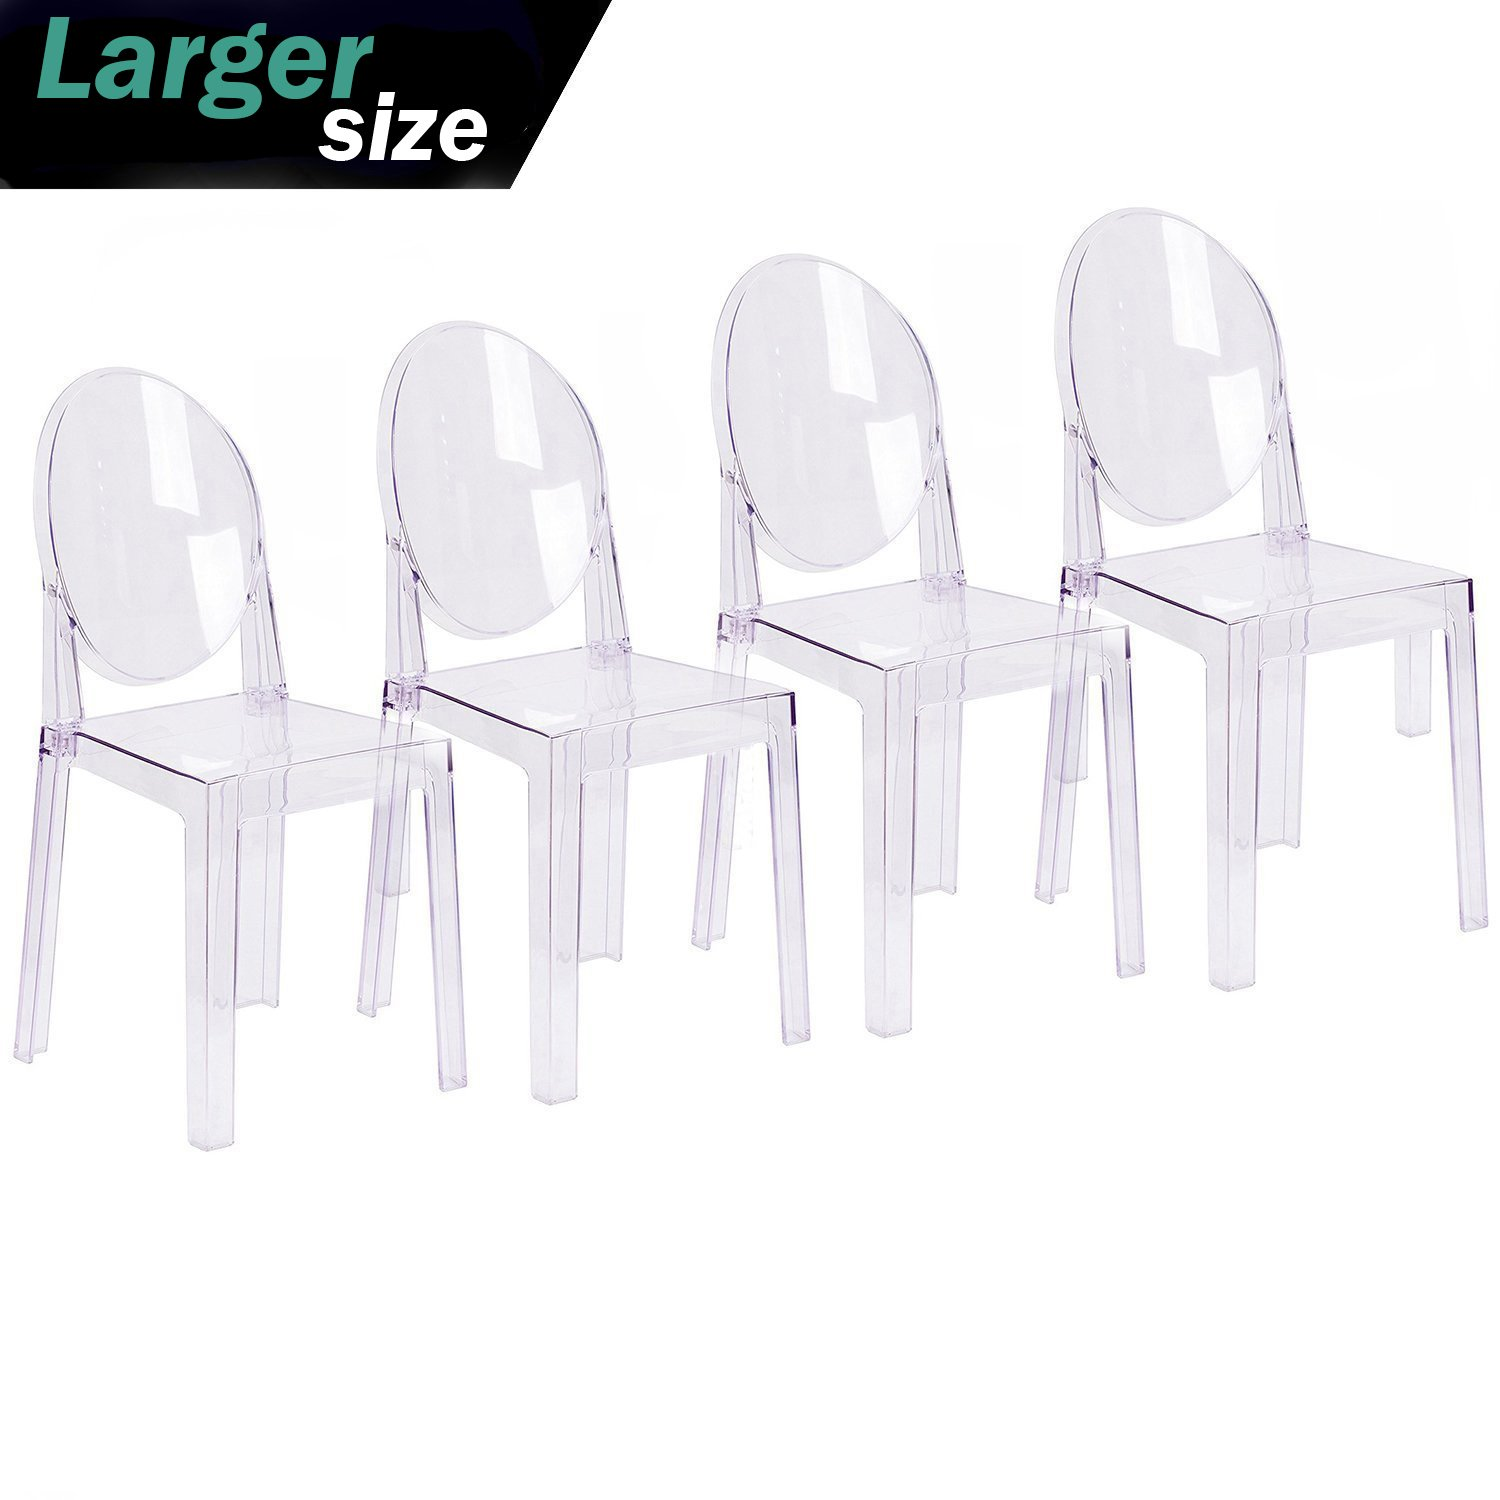 2xhome - Set of Four (4) - Clear - Large Size - Modern Ghost Side Chair Dining Room Chair Ghost Chair Clear Victoria Chair - Accent Seat - Lounge No Arms Armless Arm Less Chairs